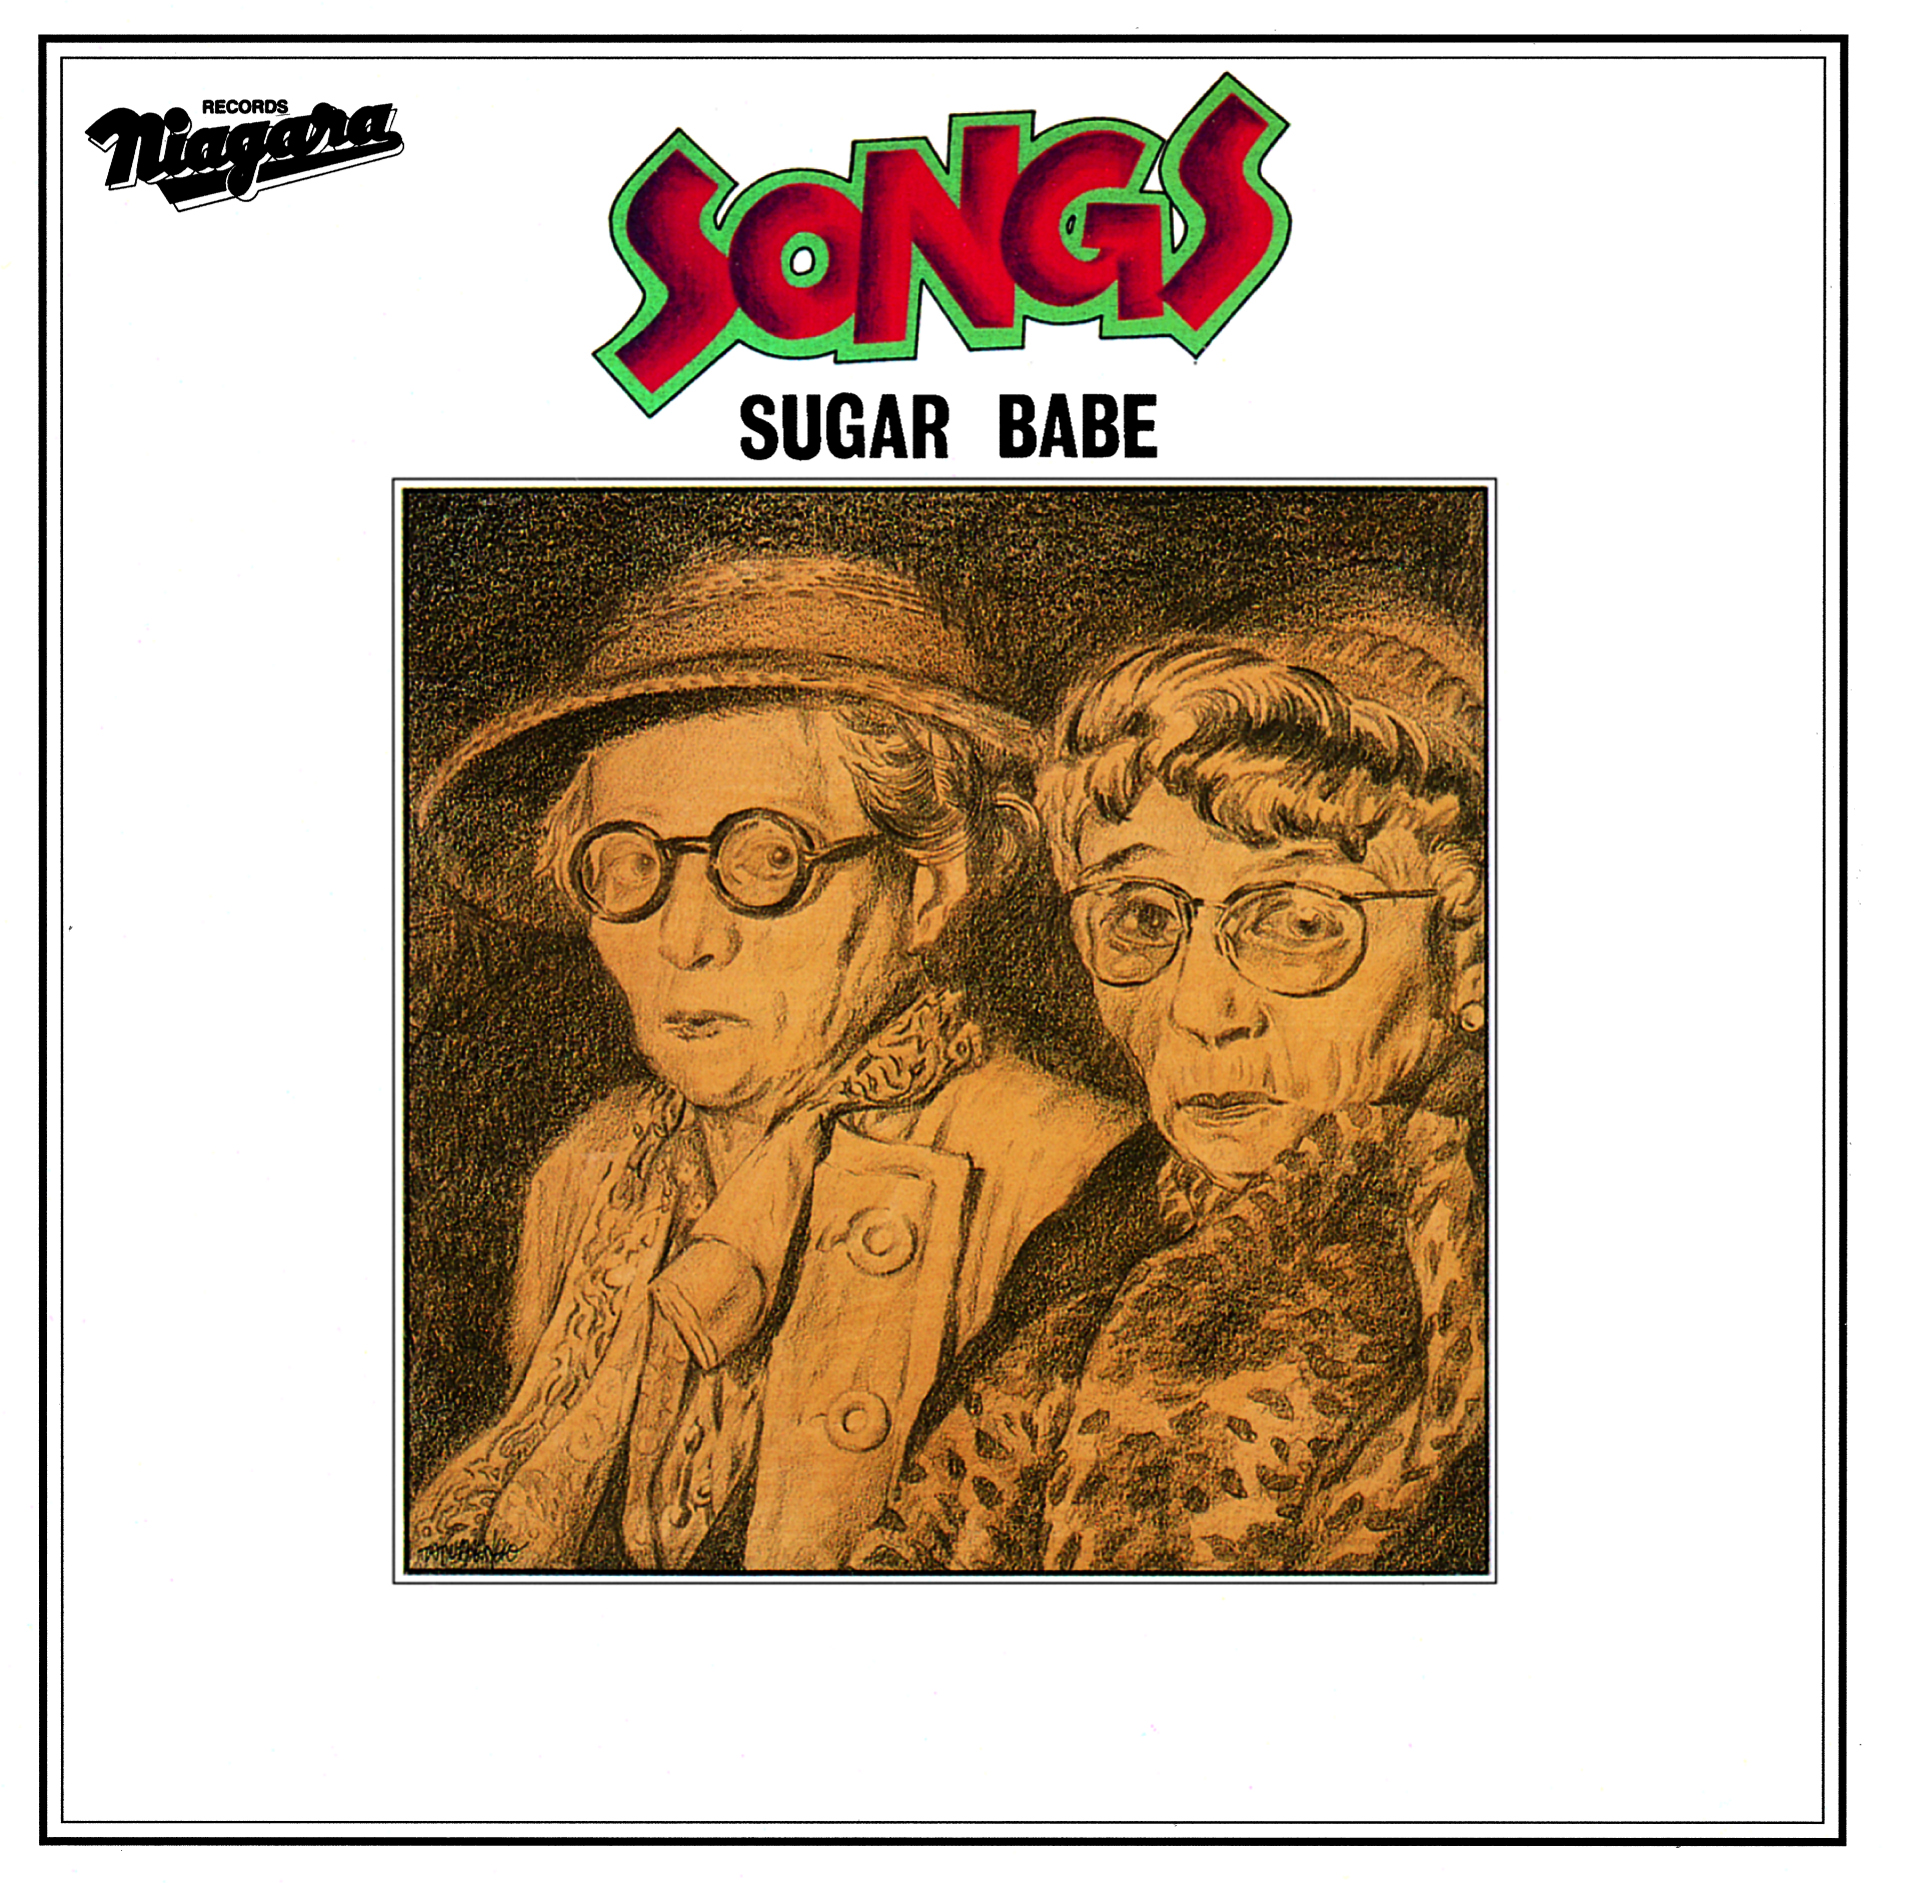 「SONGS-40th Anniversary Ultimate Edition-」SUGAR BABE(WPCL-12160) 2015/8/5